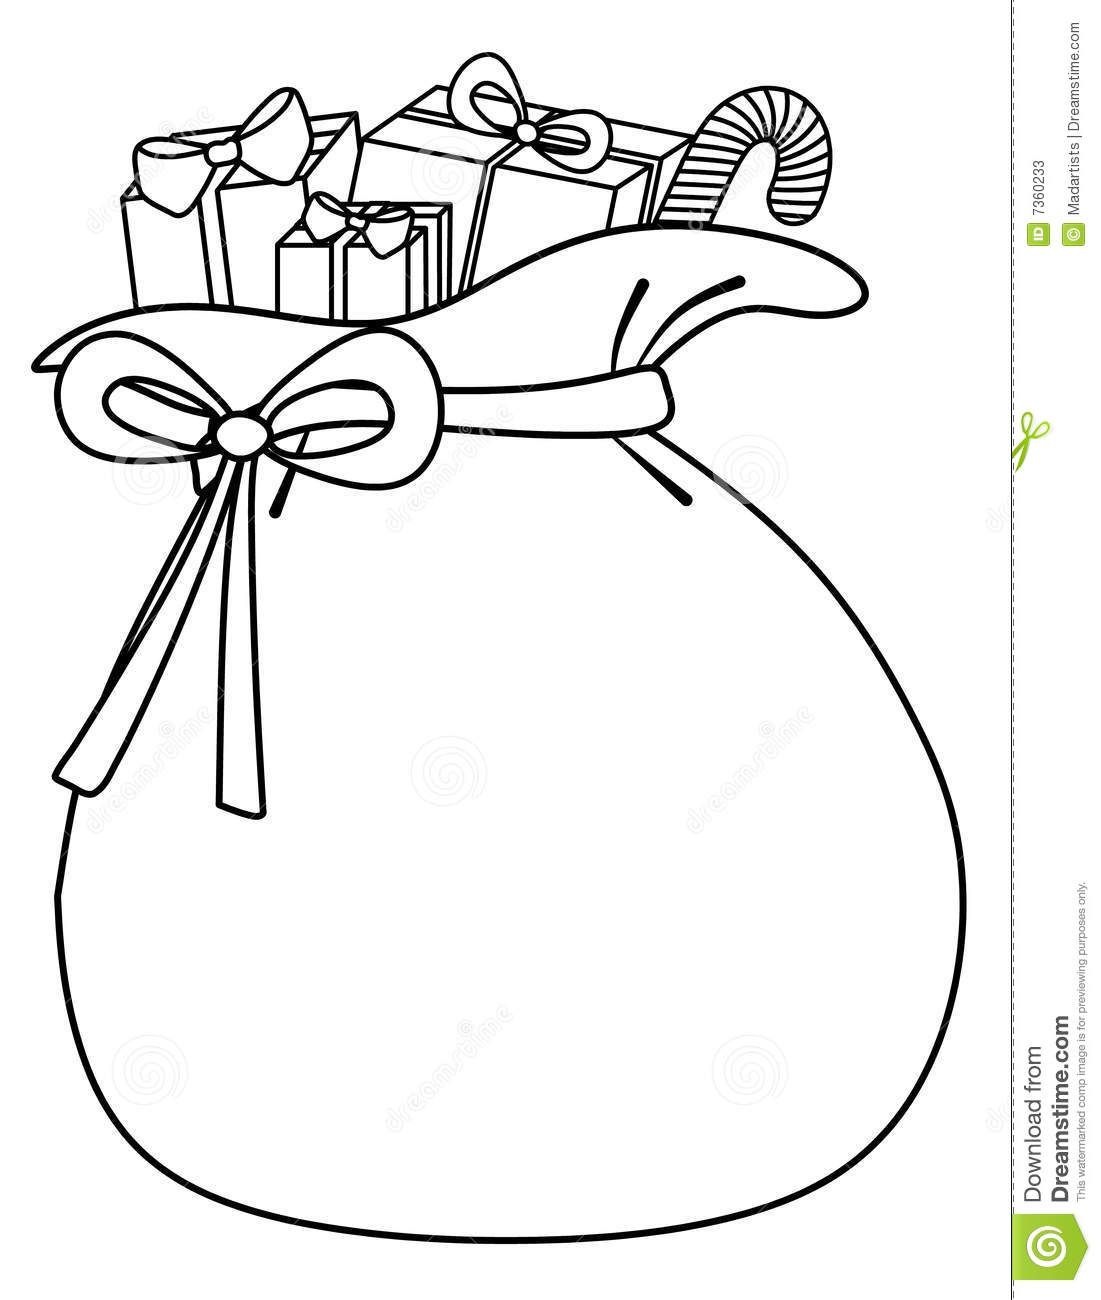 Santa s toy shop clipart black and white clip art free download Santa Sack Of Toys Background Stock Photos - Image: 7360233 ... clip art free download